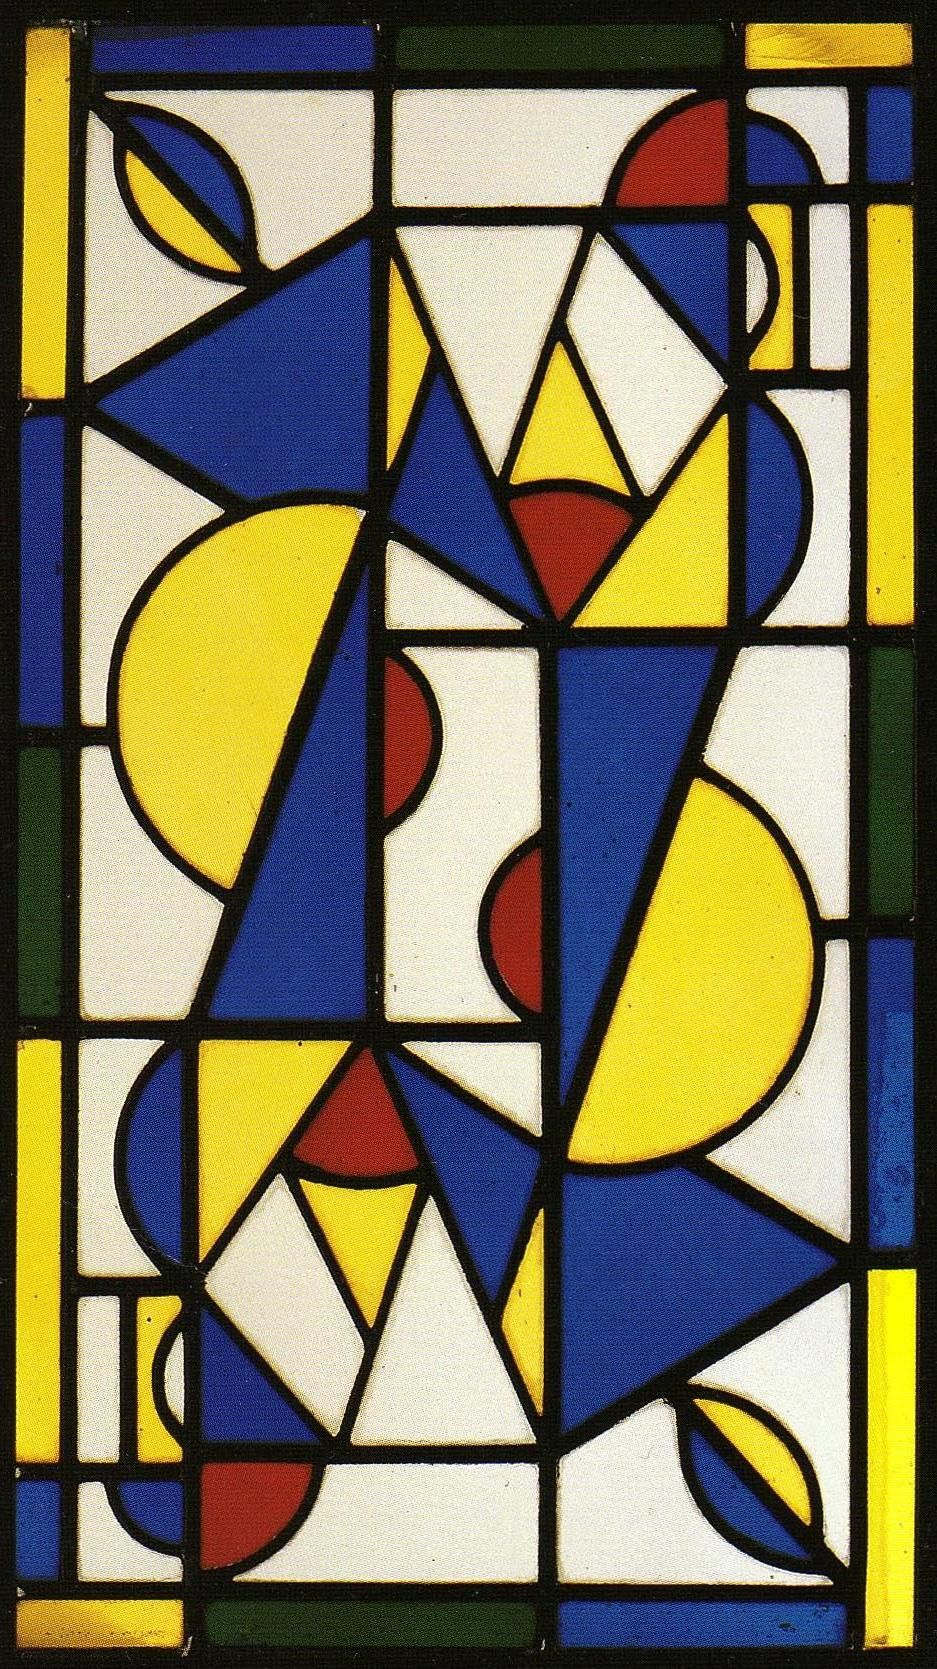 Theo Van Doesburg along with Piet Mondrian founded the